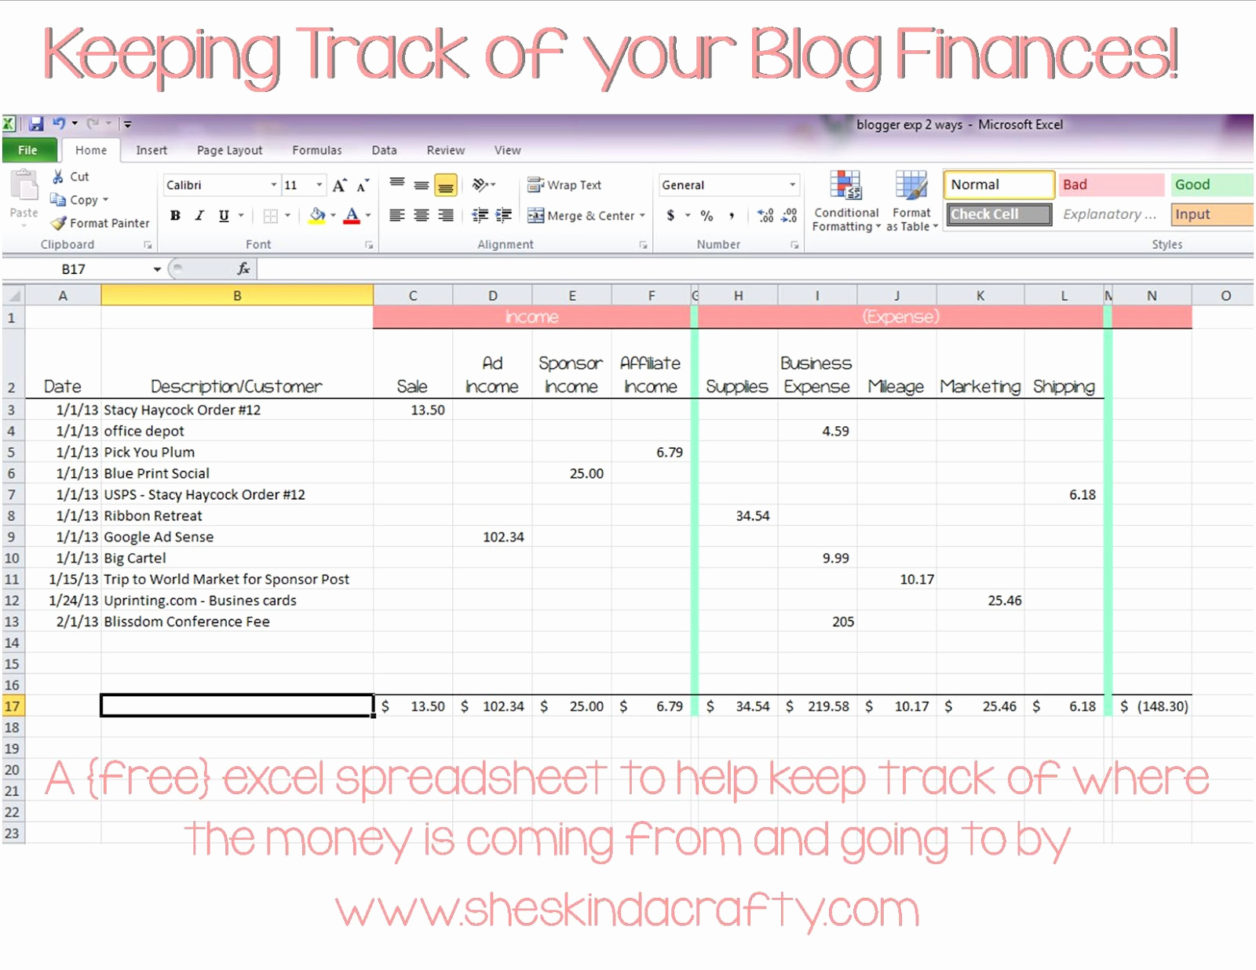 Blank Expense Sheet Beautiful Free Spreadsheet Templates For Small With Expense Tracking Spreadsheet Template